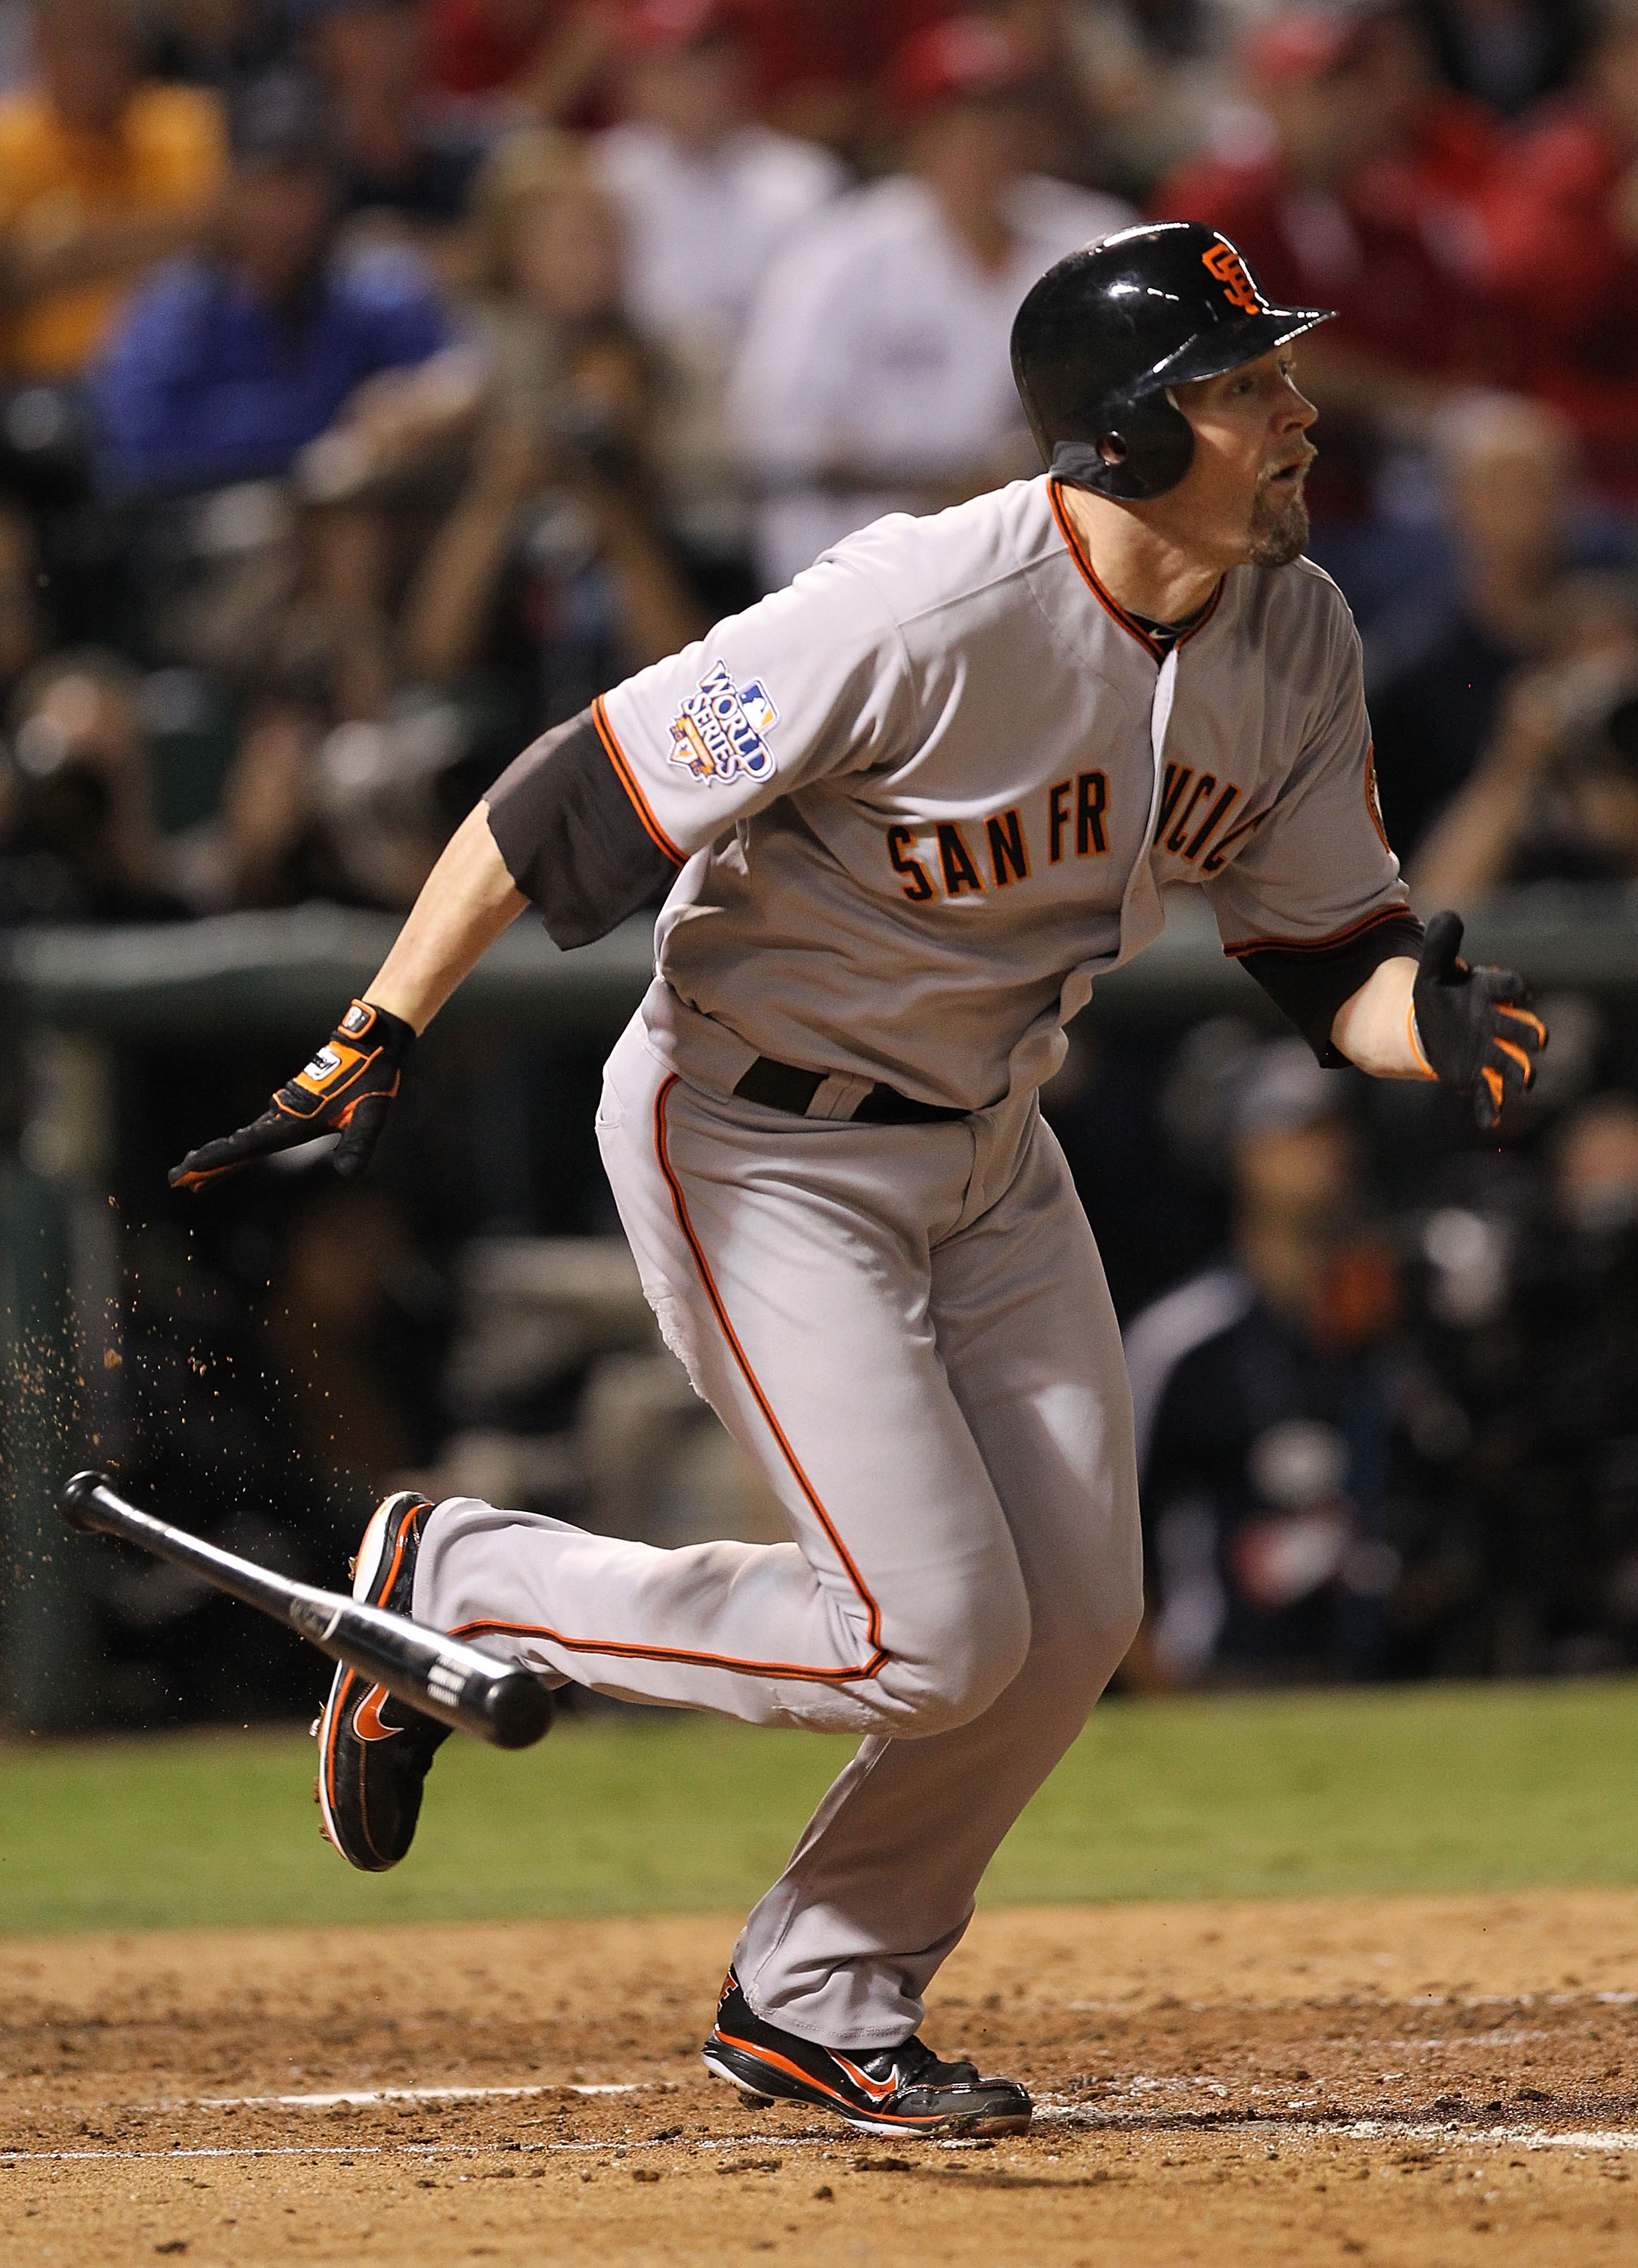 ARLINGTON, TX - NOVEMBER 01:  Aubrey Huff #17 of the San Francisco Giants  bats against the Texas Rangers in Game Five of the 2010 MLB World Series at Rangers Ballpark in Arlington on November 1, 2010 in Arlington, Texas.  (Photo by Ronald Martinez/Getty